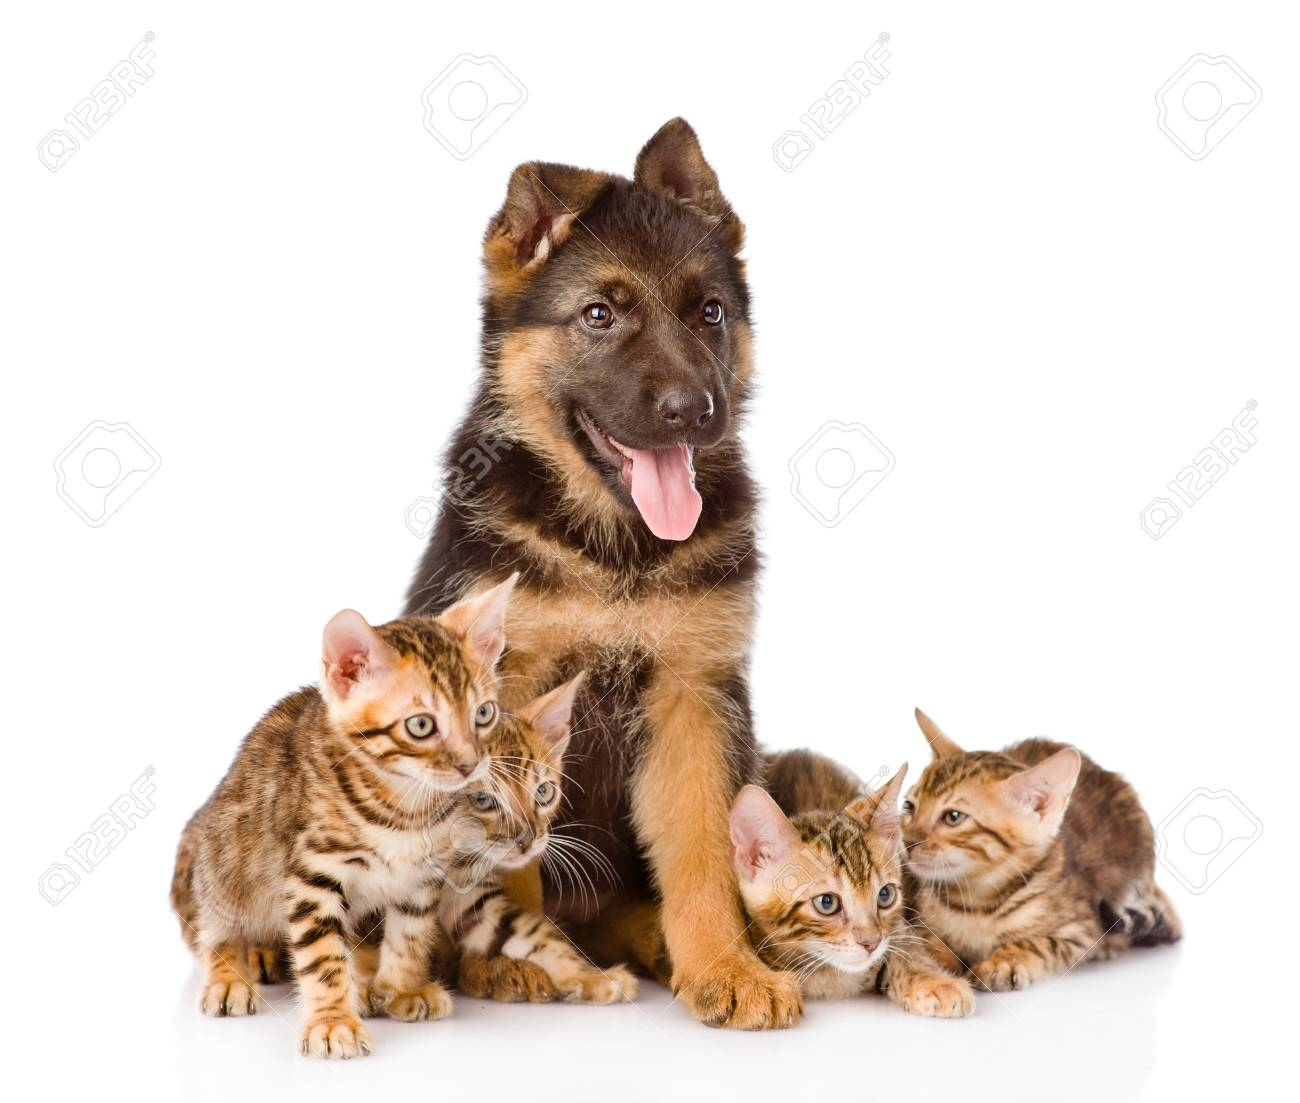 German Shepherd Puppy And Bengal Kittens Together Isolated On